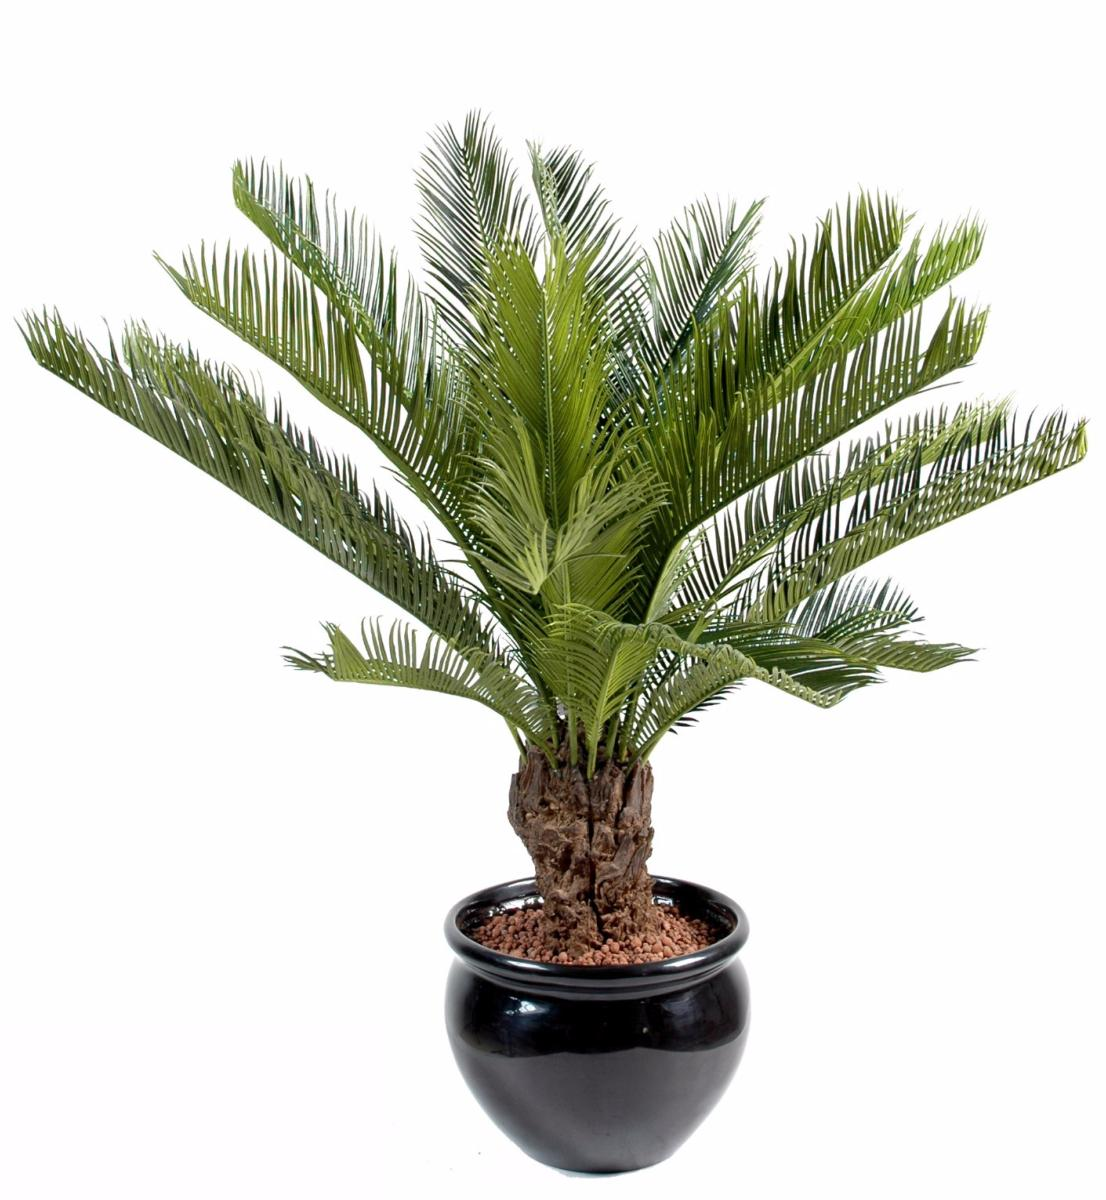 Palmier artificiel cycas tronc plante int rieur for Plante pot exterieur